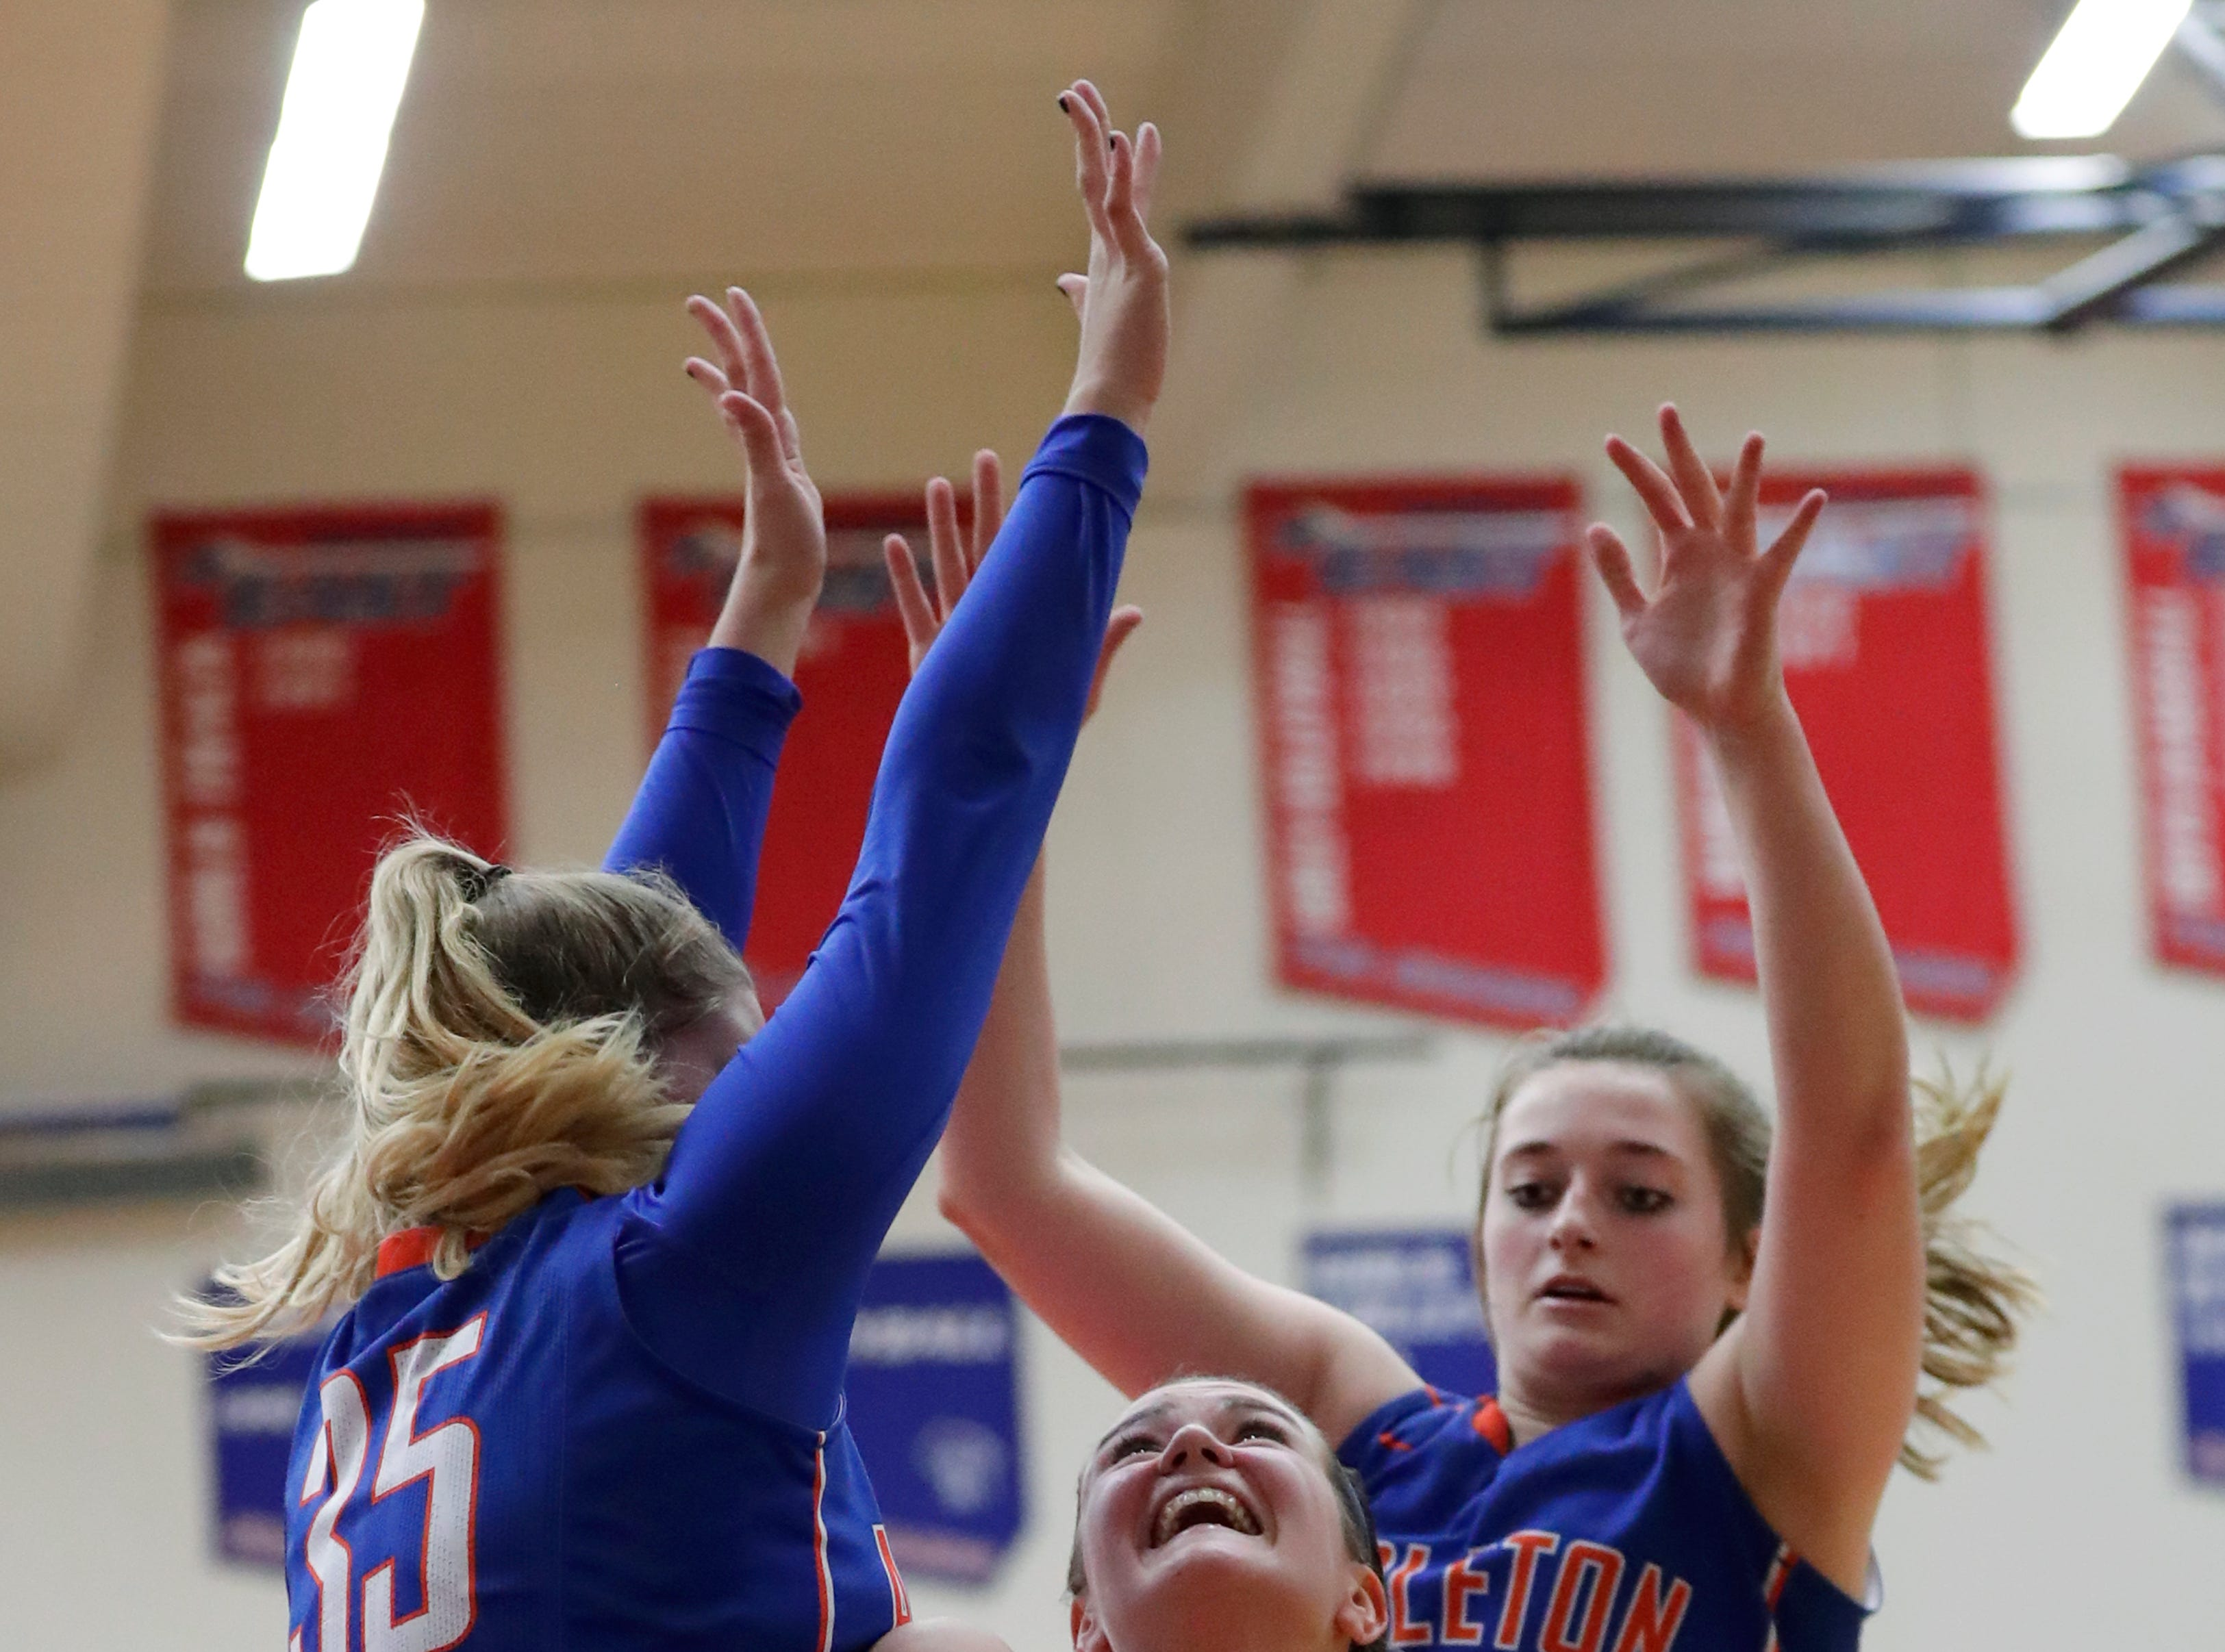 Appleton East High School's Abbie King (40) tries to put up a shot against Appleton West High School's Sydney Gehl (35) and Jenna Hoffman (43) during their girls basketball game Friday, January 11, 2019, at Appleton East High School in Appleton, Wis. 